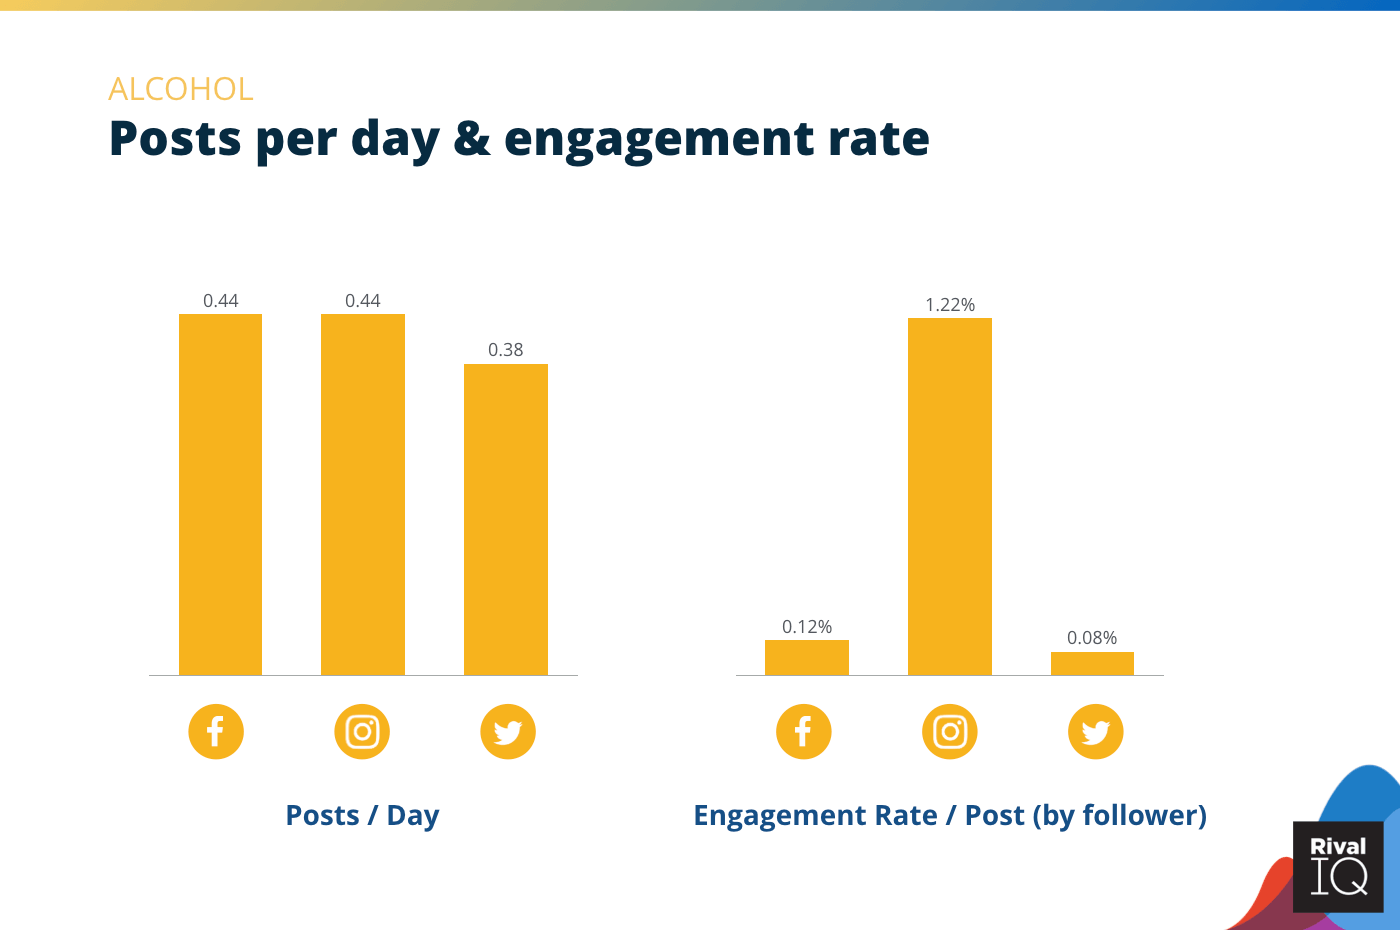 Chart of posts per day and engagement rate per post across all channels, Alcohol